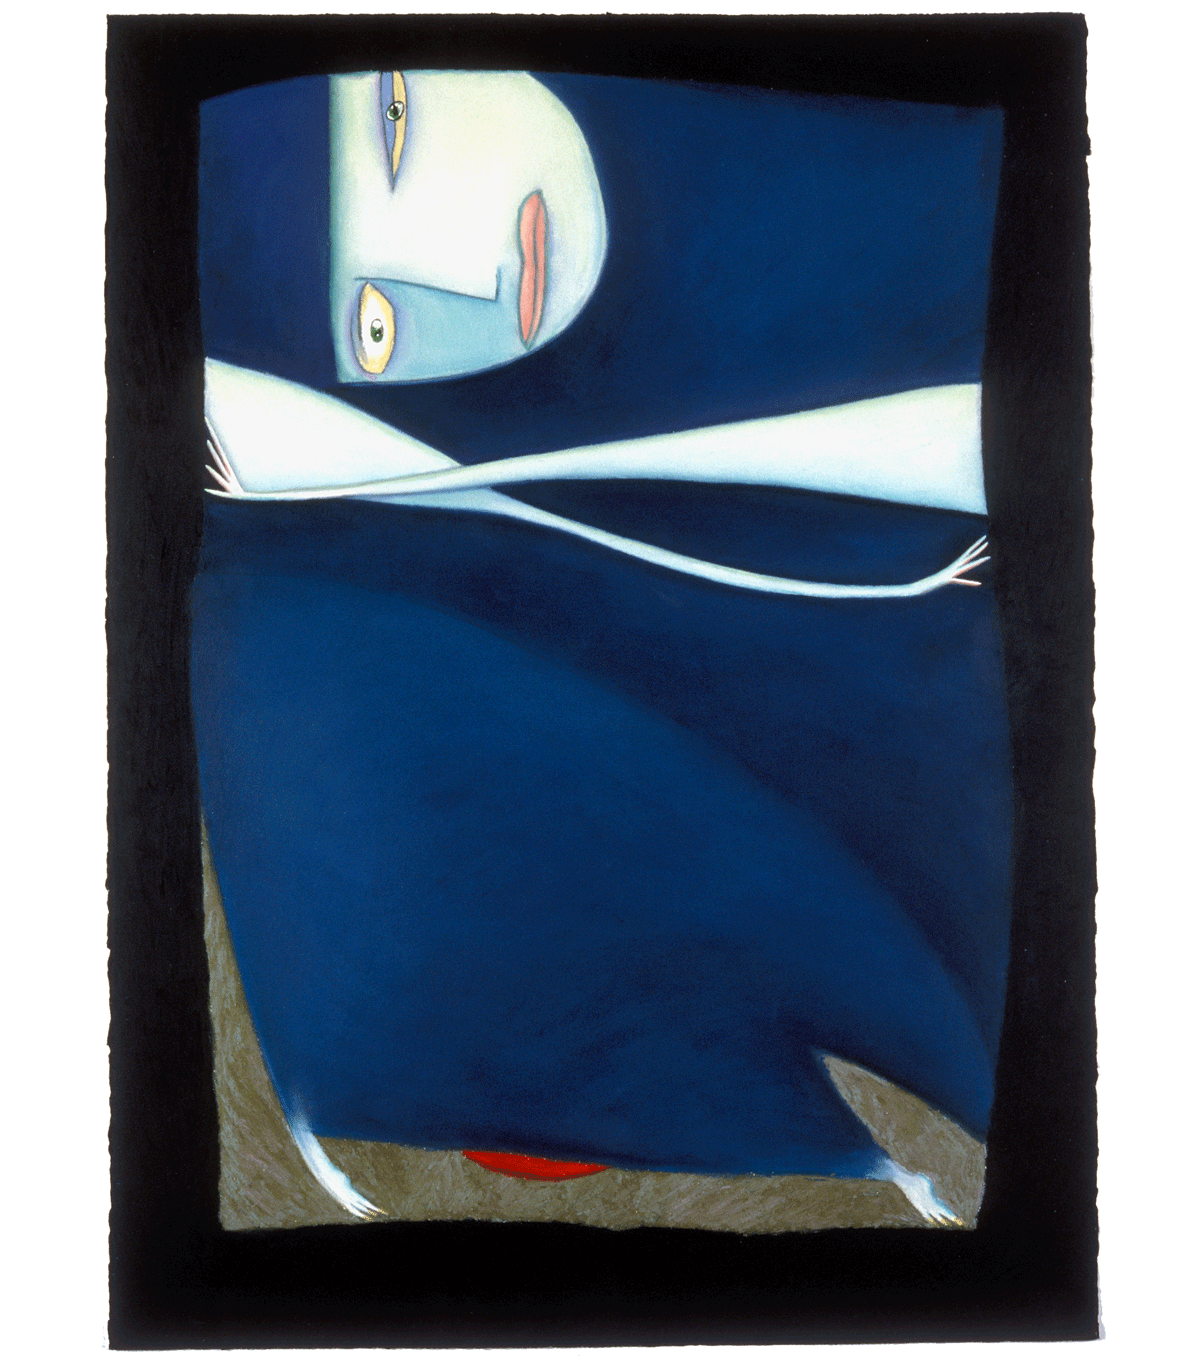 virginiahalstead.com/Paintings/Self-contained-but-pushing-it.png